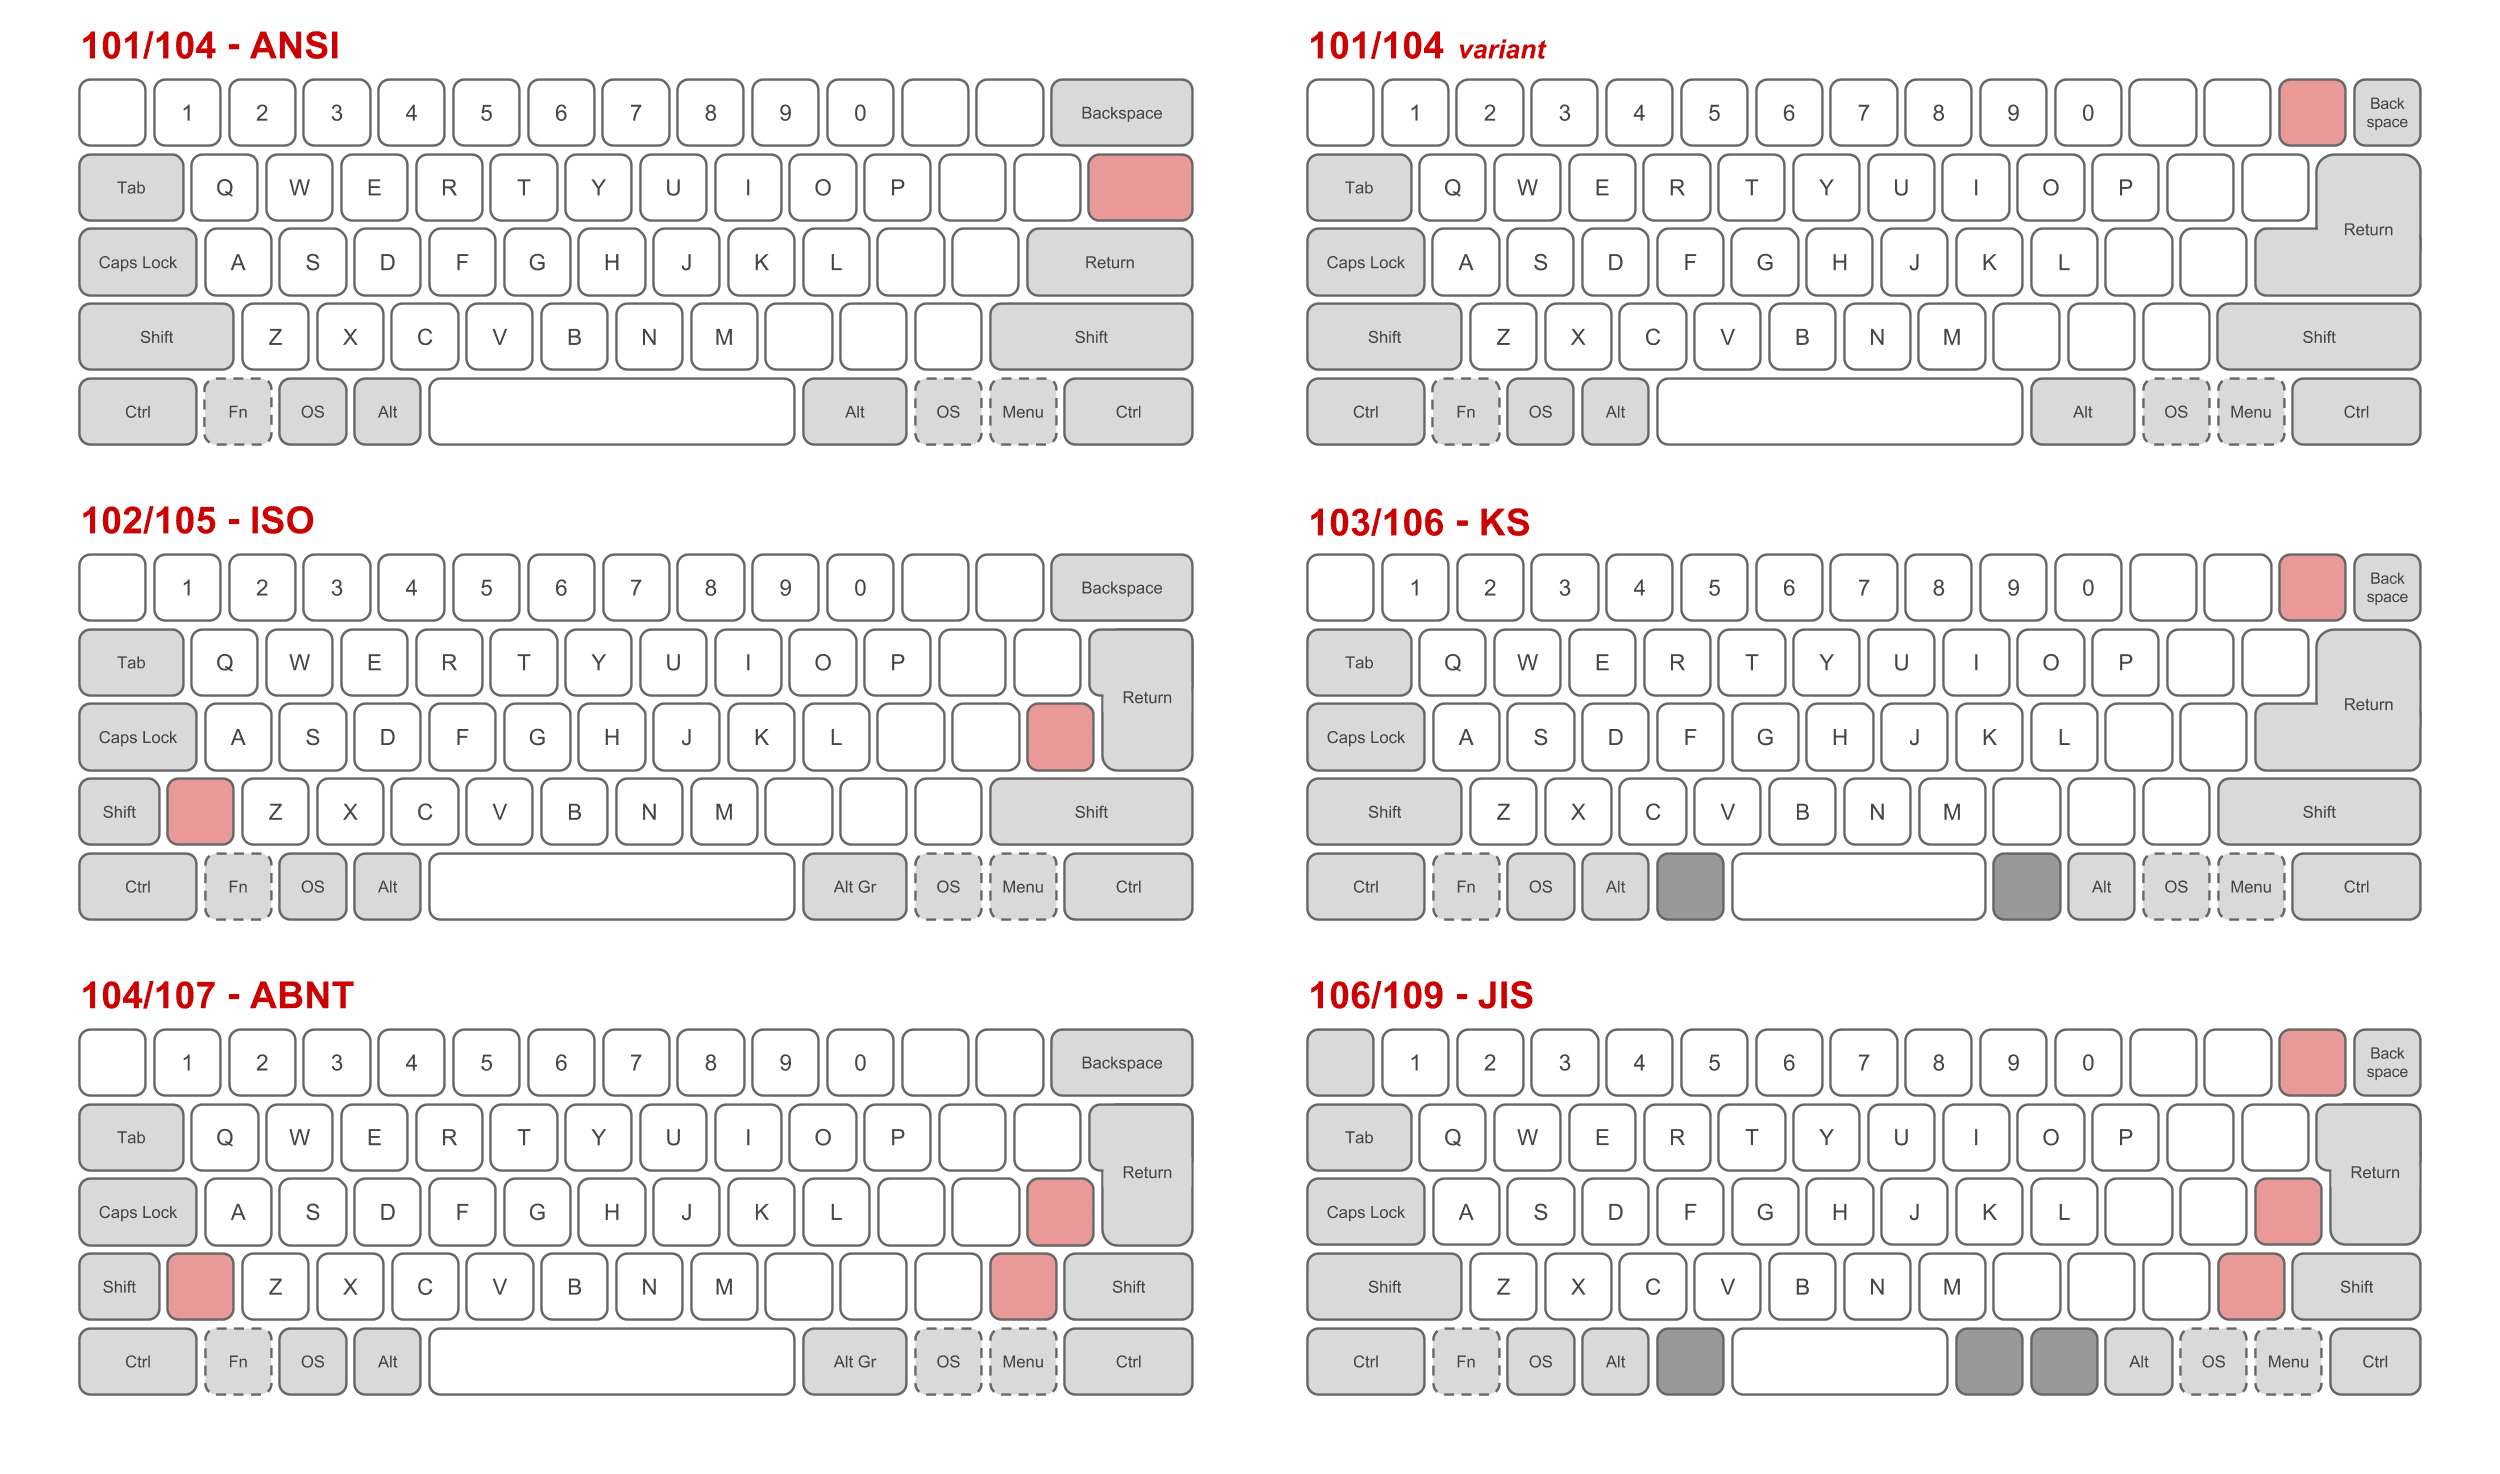 Physical_keyboard_layouts_comparison_ANSI_ISO_KS_ABNT_JIS.png